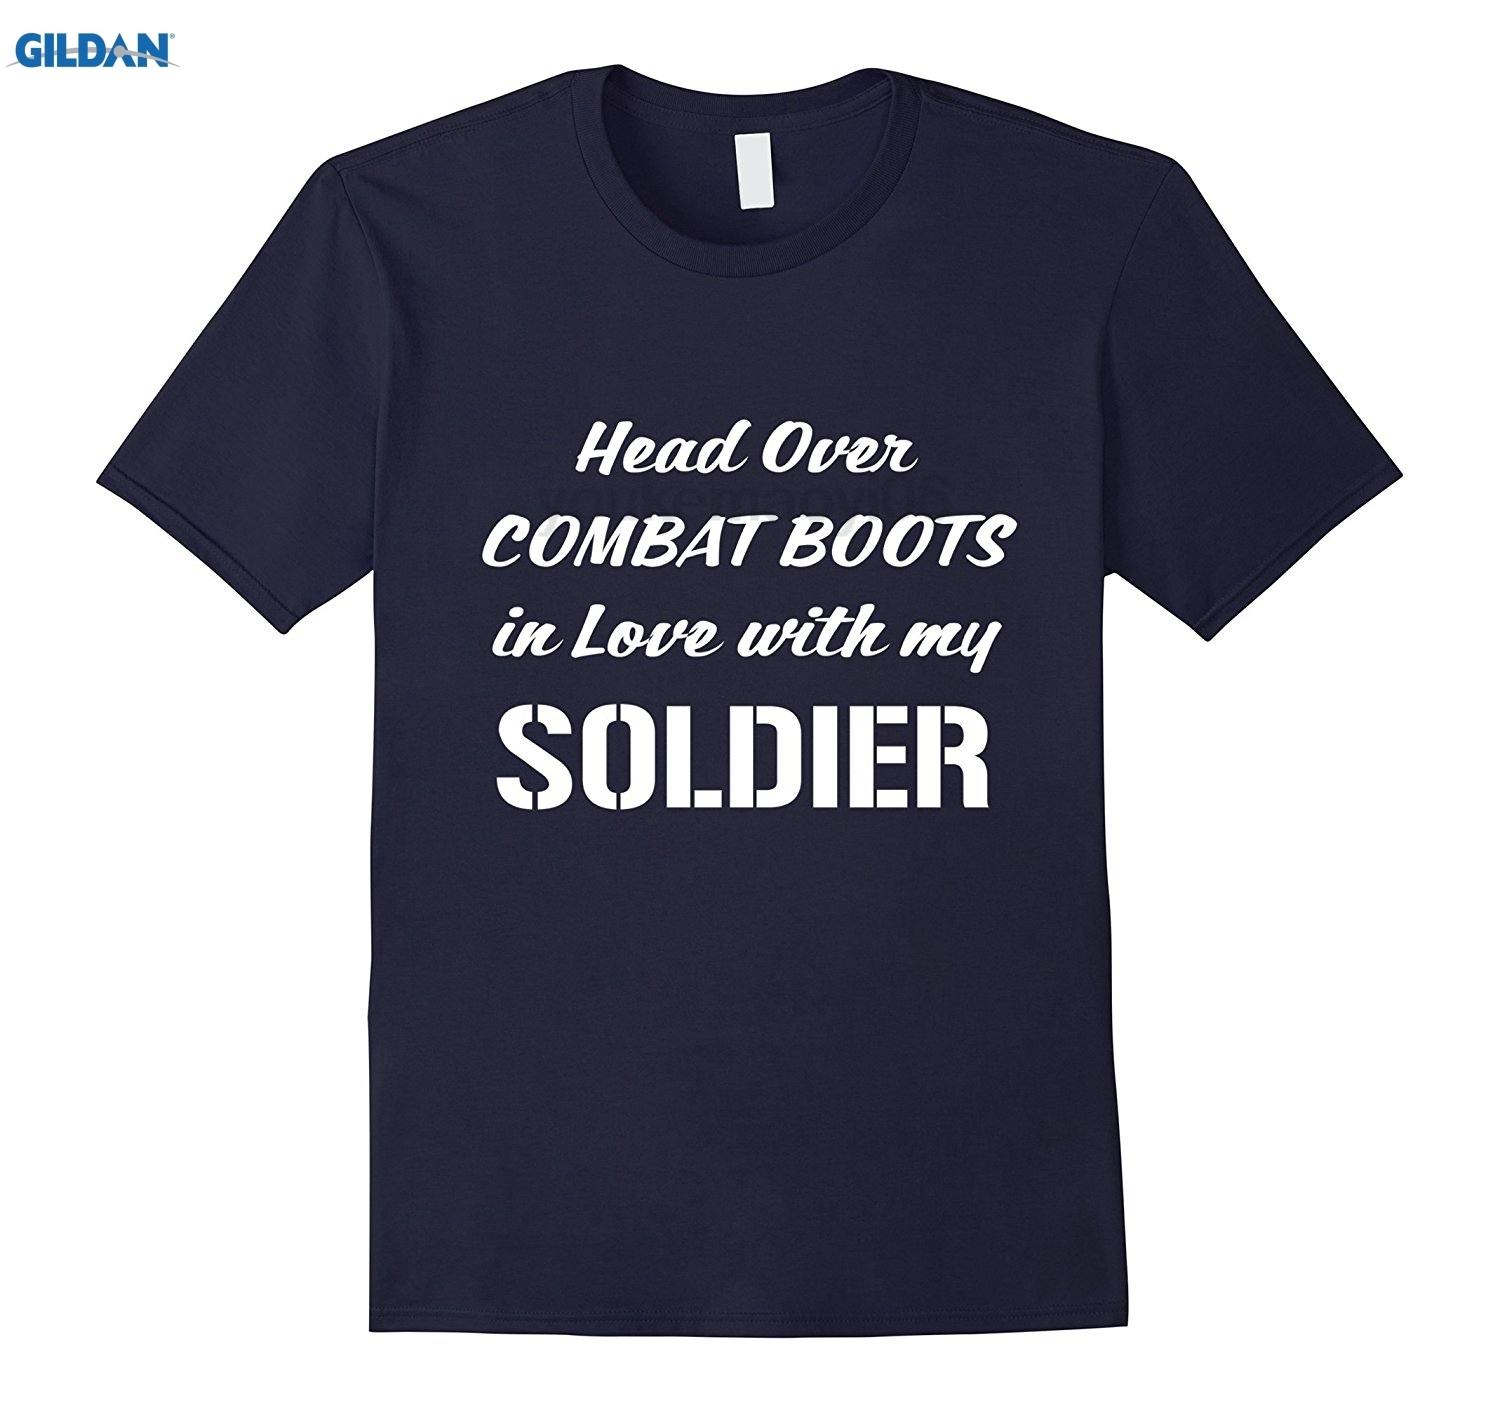 GILDAN Head Over Combat Boots in Love with my Soldier T-Shirt